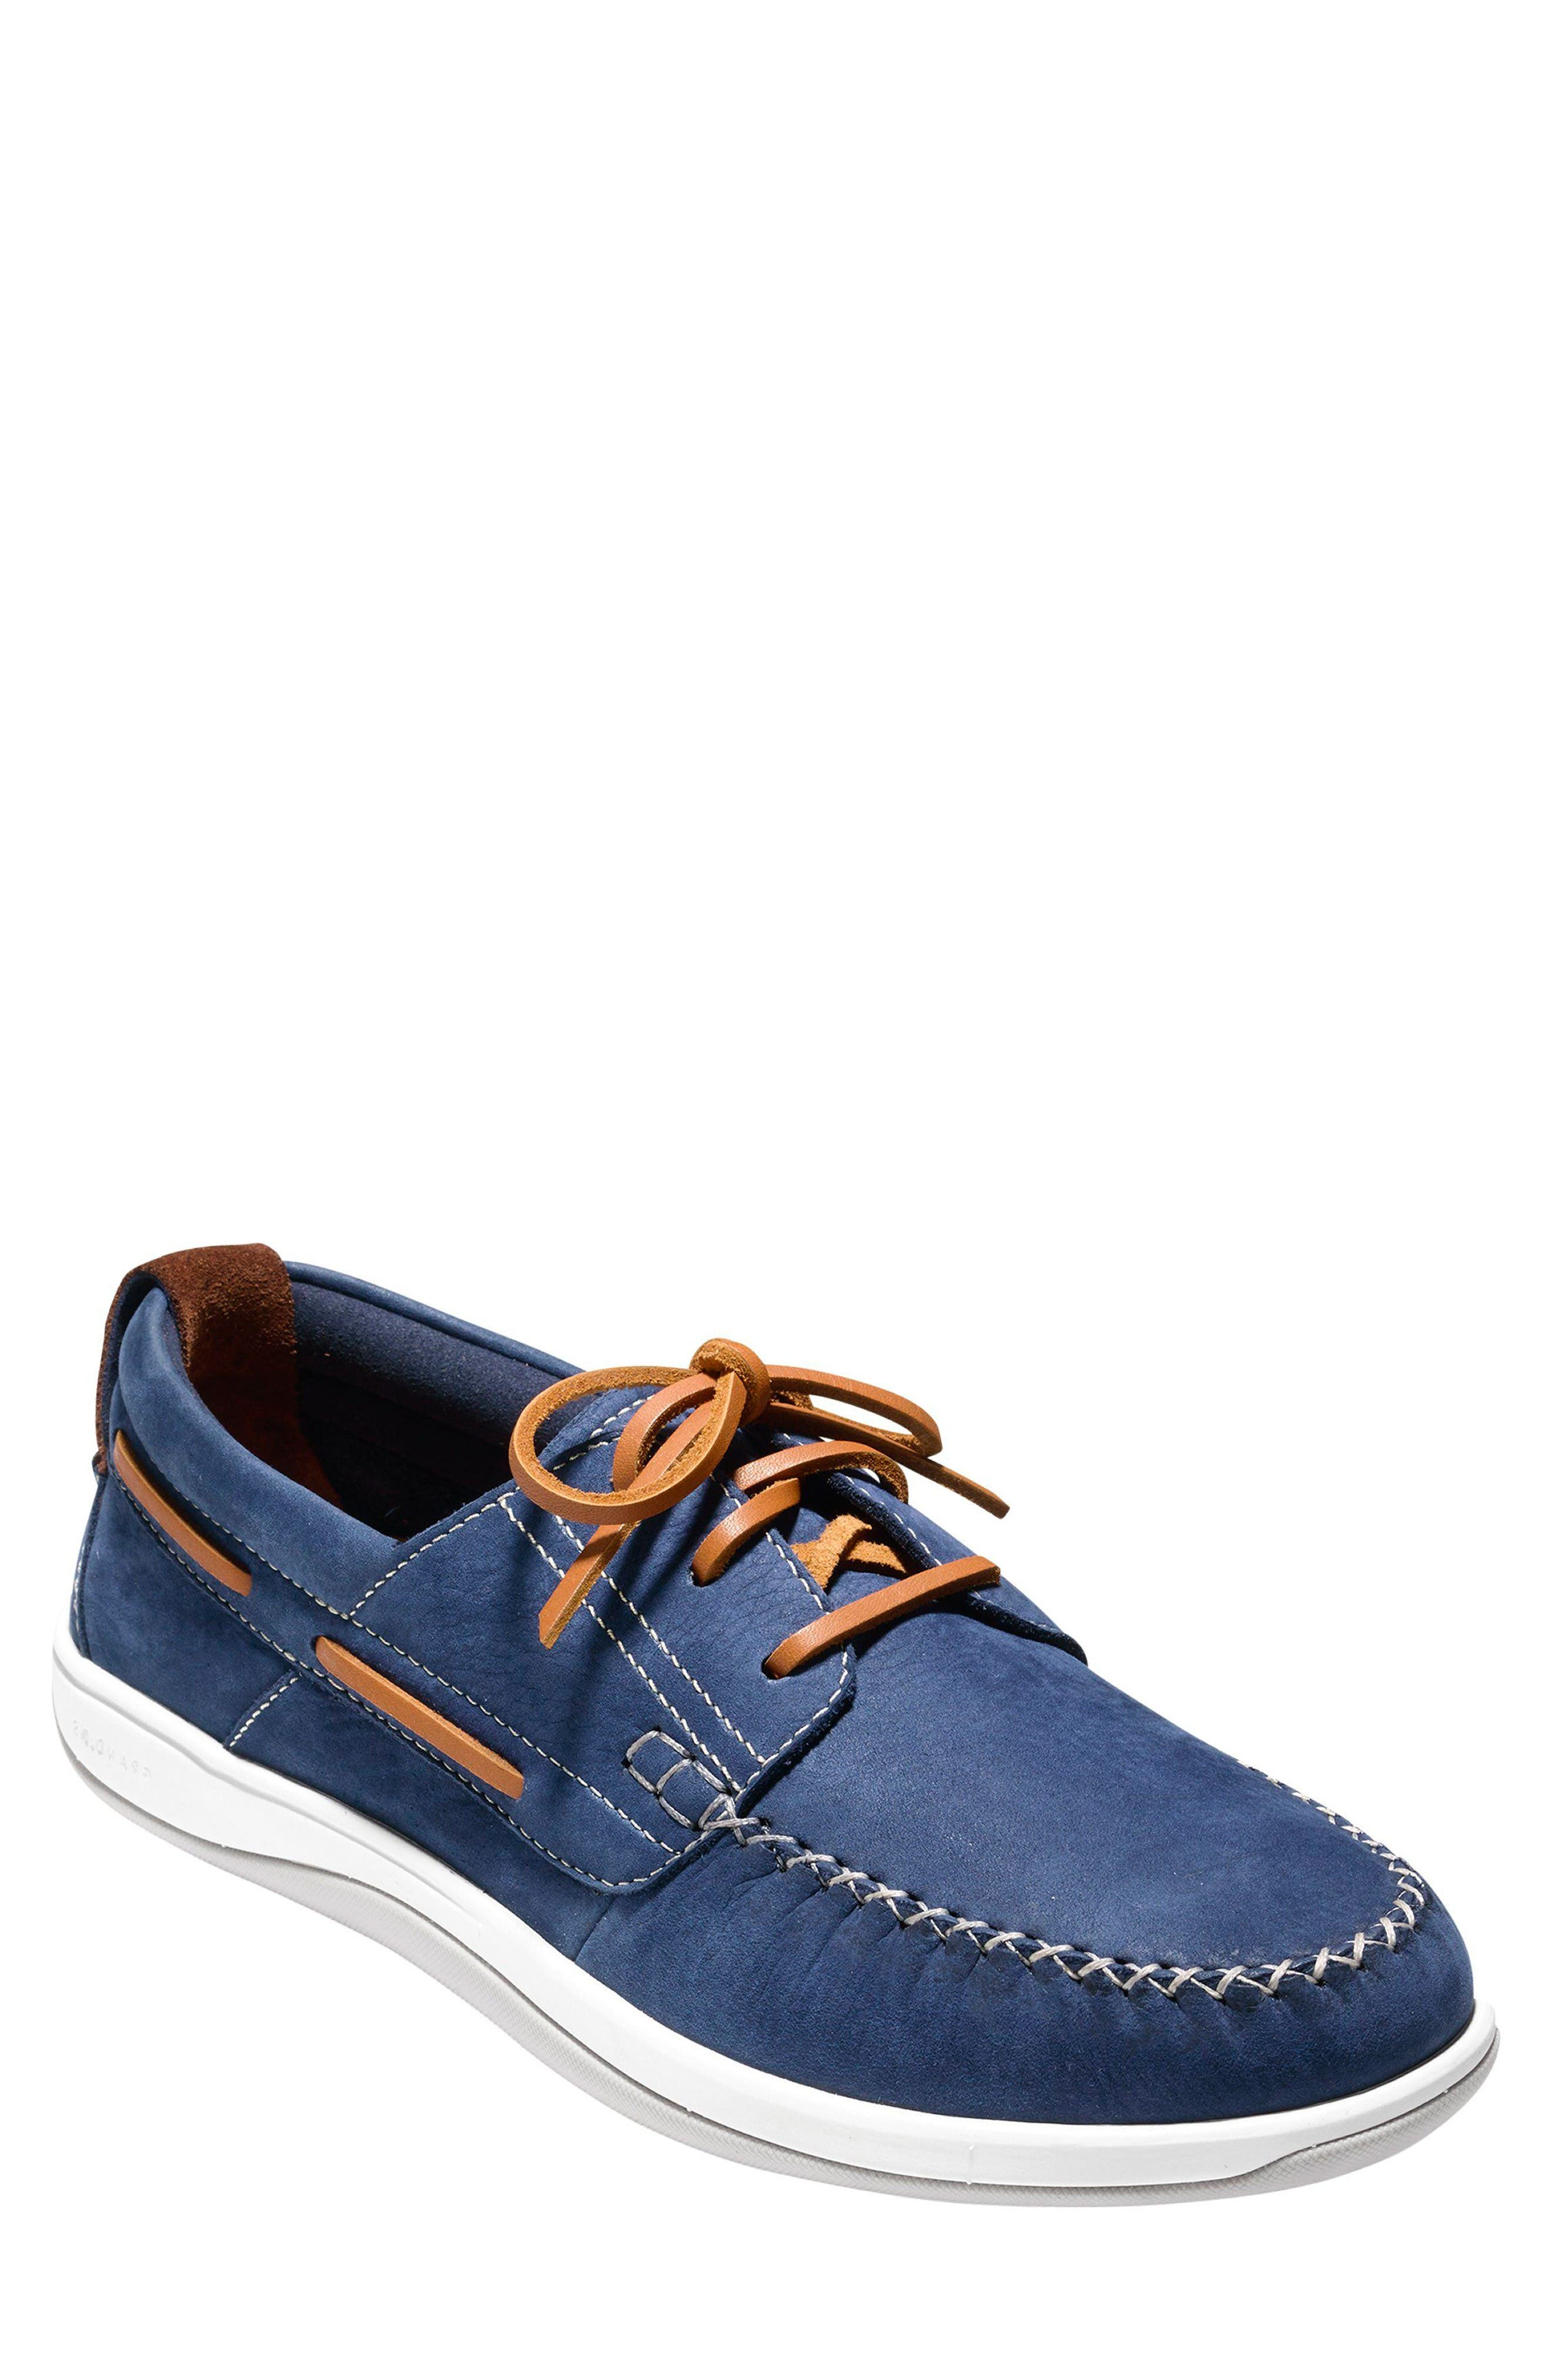 boothbay guys Buy cole haan men's boothbay slip-on loafer and other loafers & slip-ons at amazoncom our wide selection is eligible for free shipping and free returns.